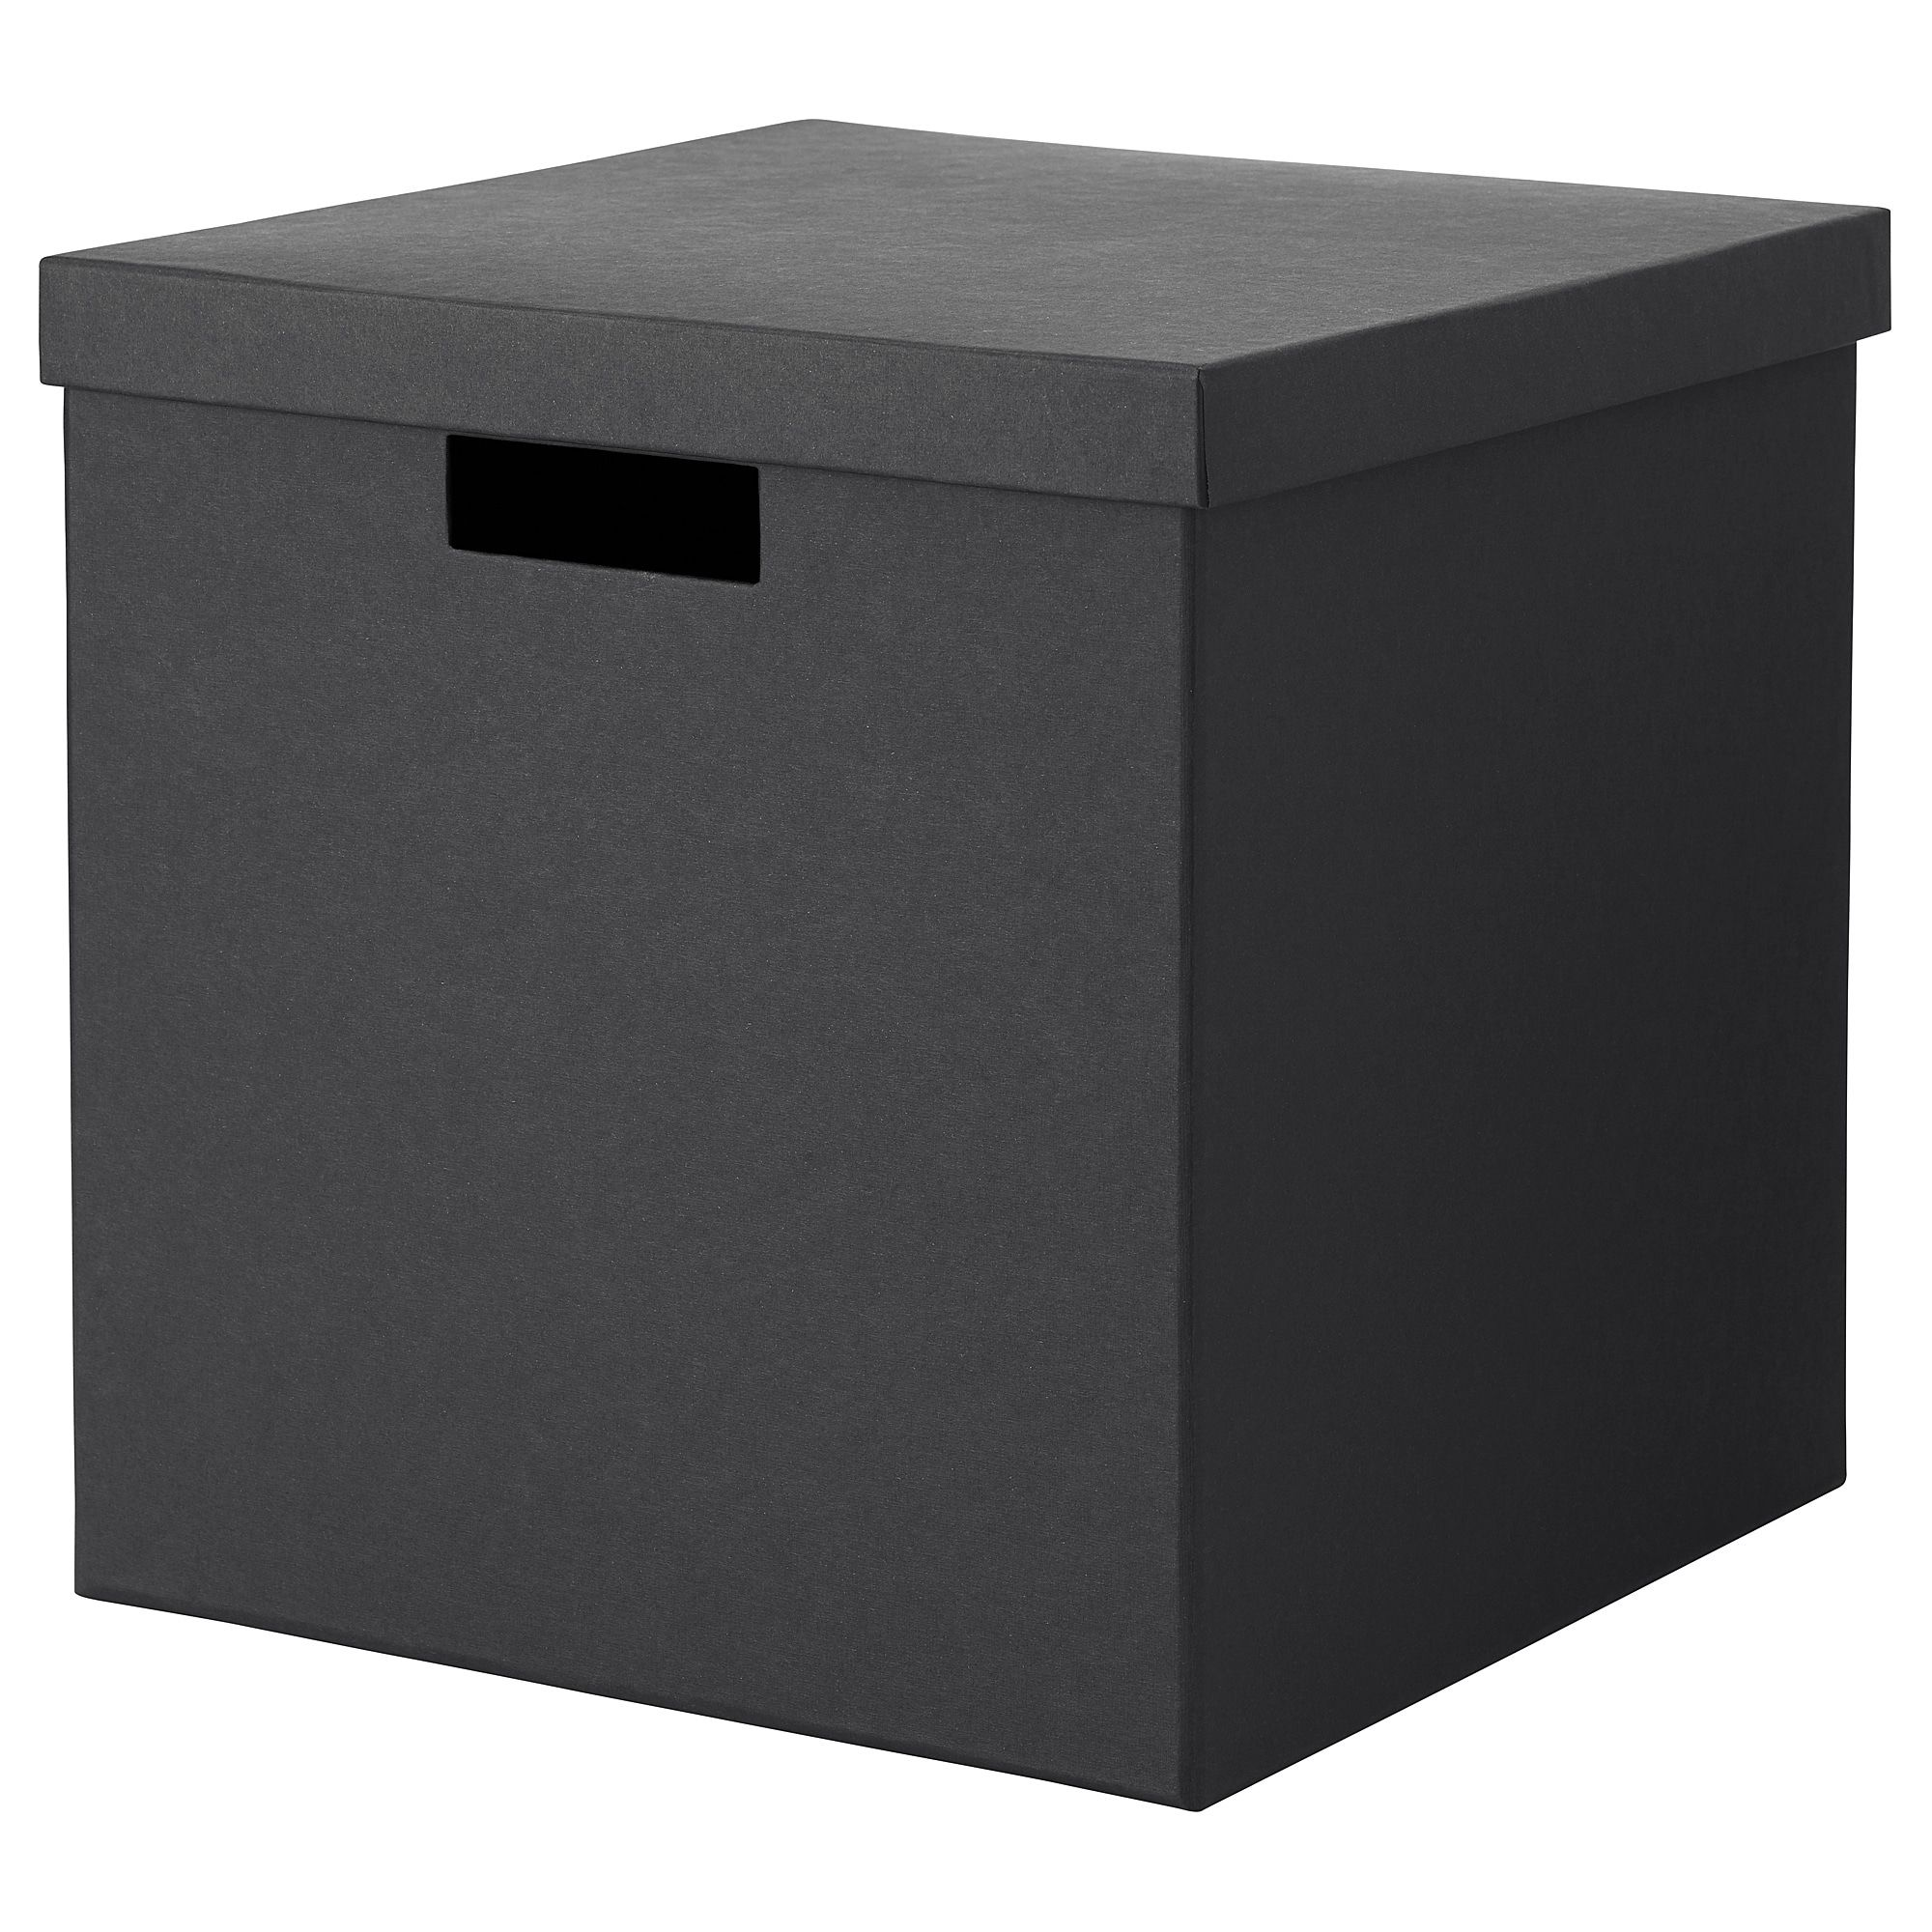 Ikea Us Furniture And Home Furnishings Storage Boxes With Lids Clothes Storage Boxes Box With Lid